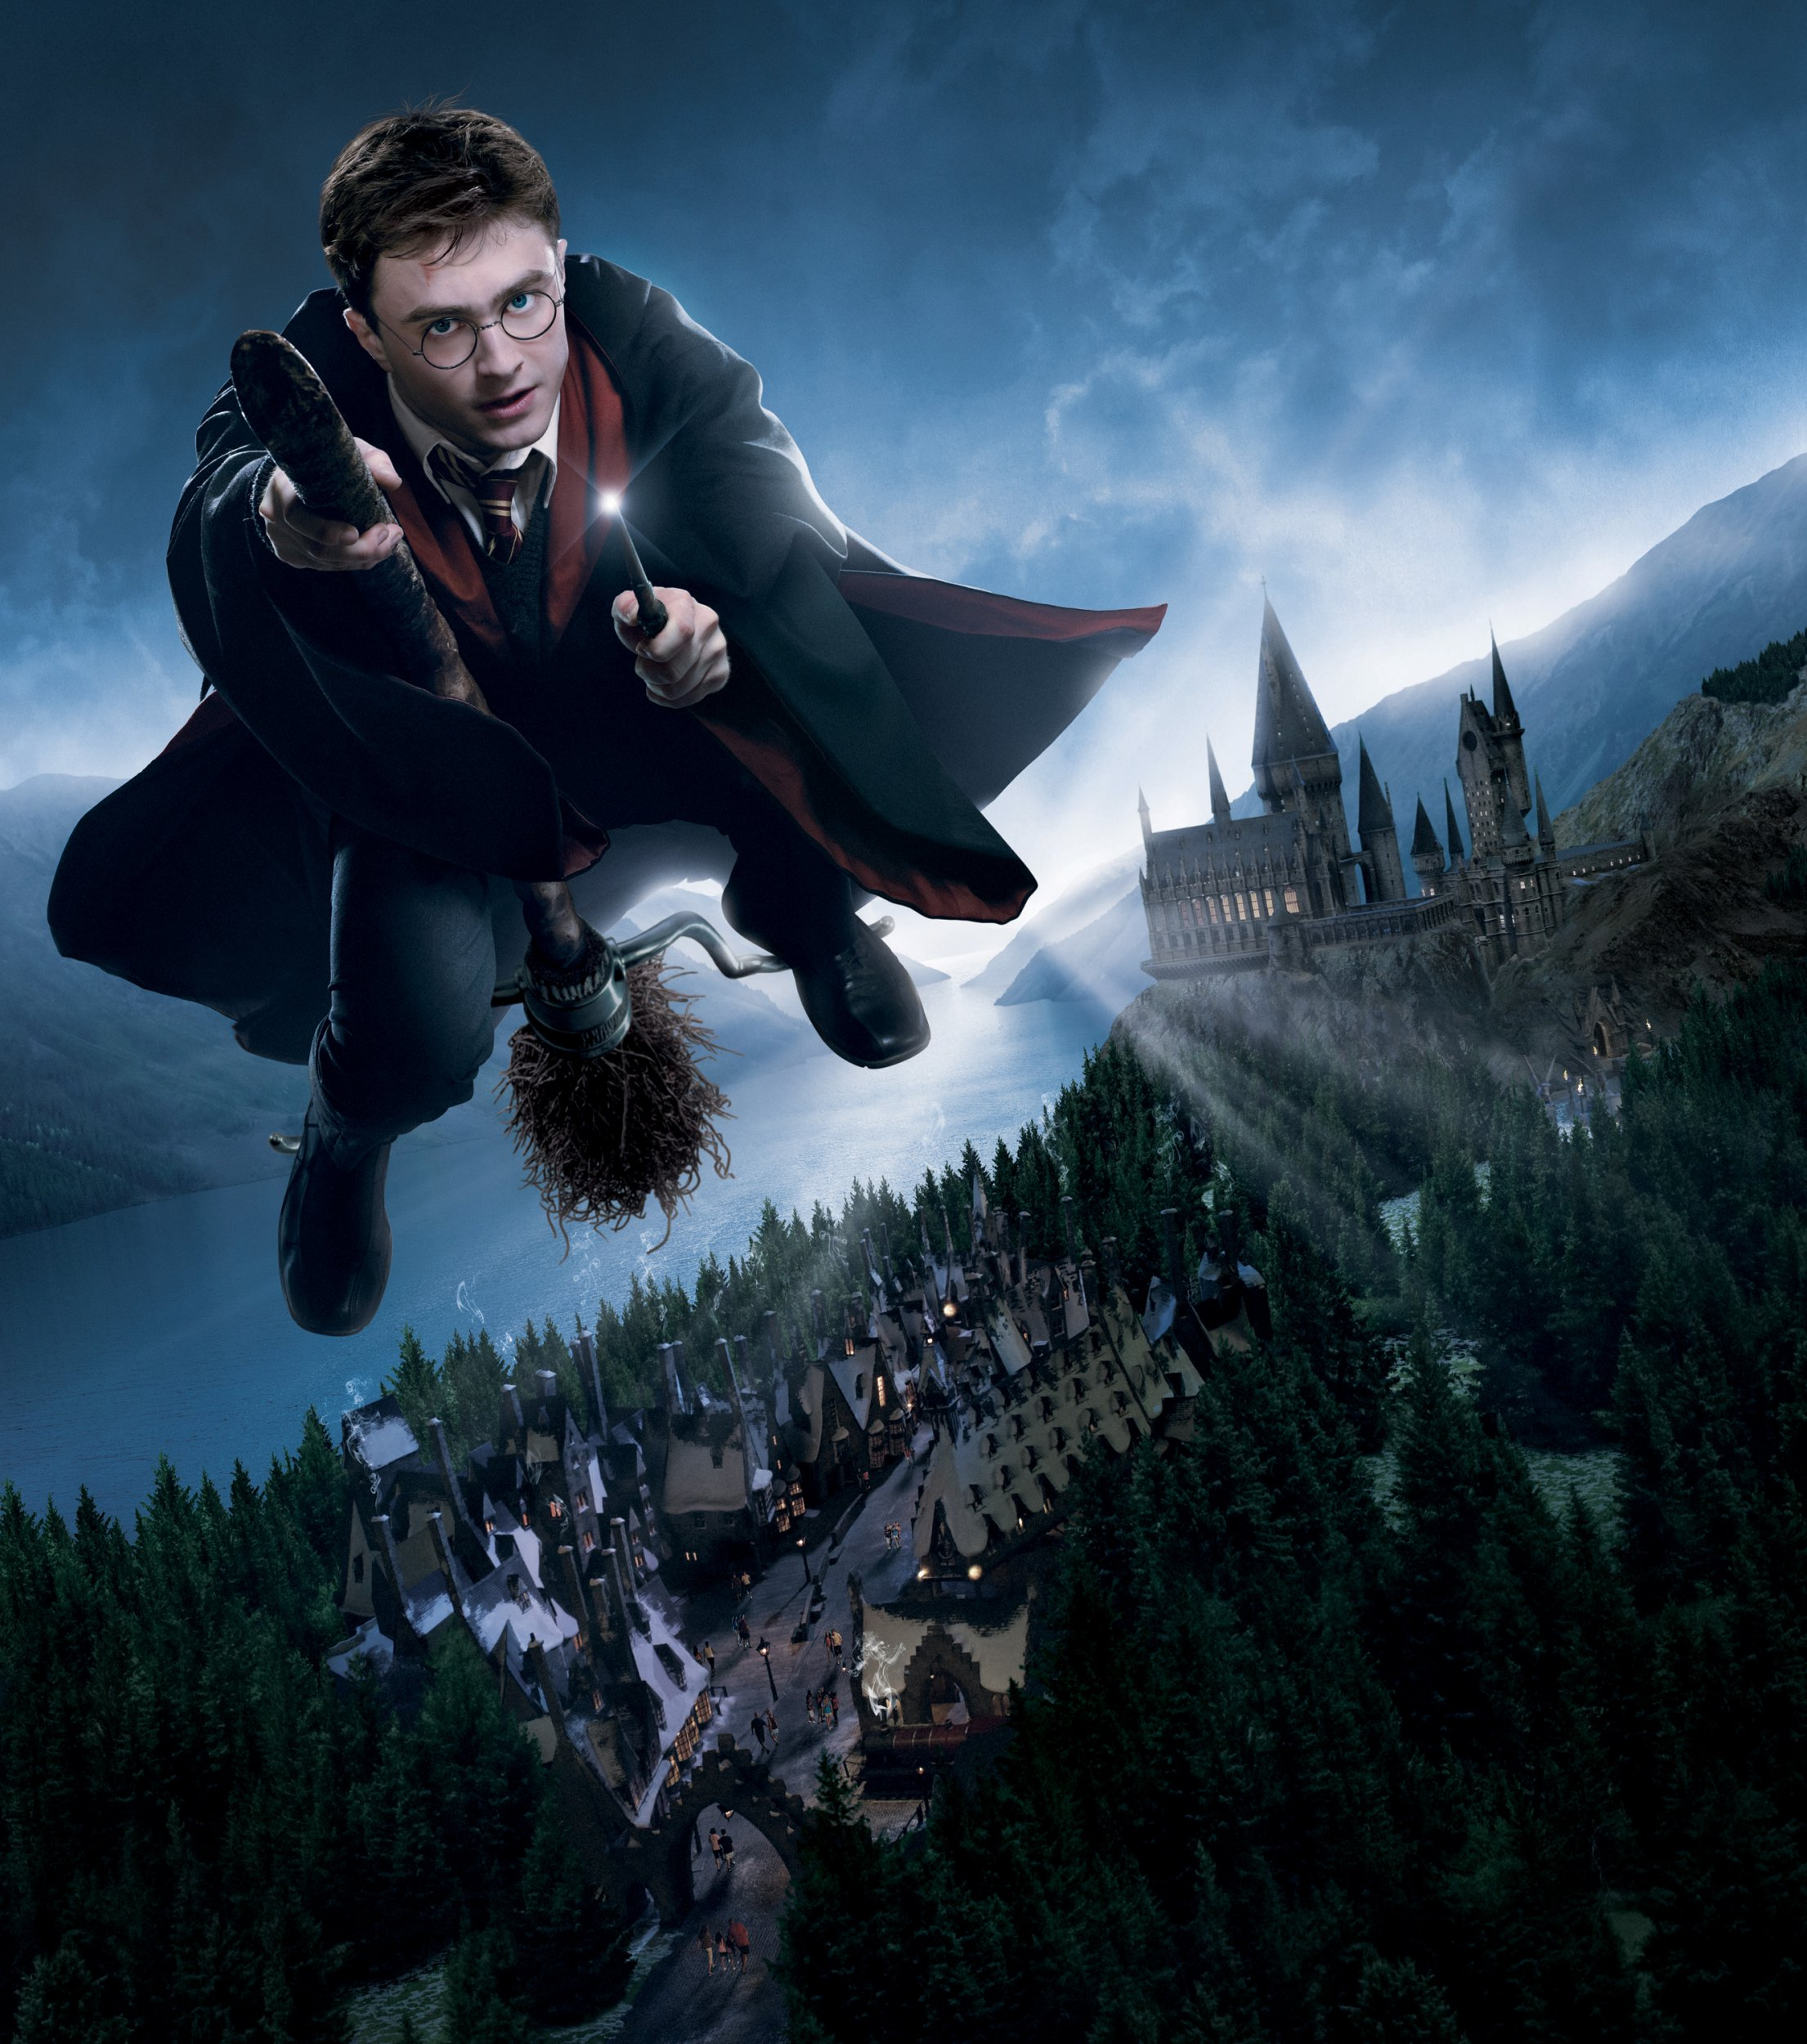 Daniel Radcliffe drank heavily to cope with Harry Potter fame